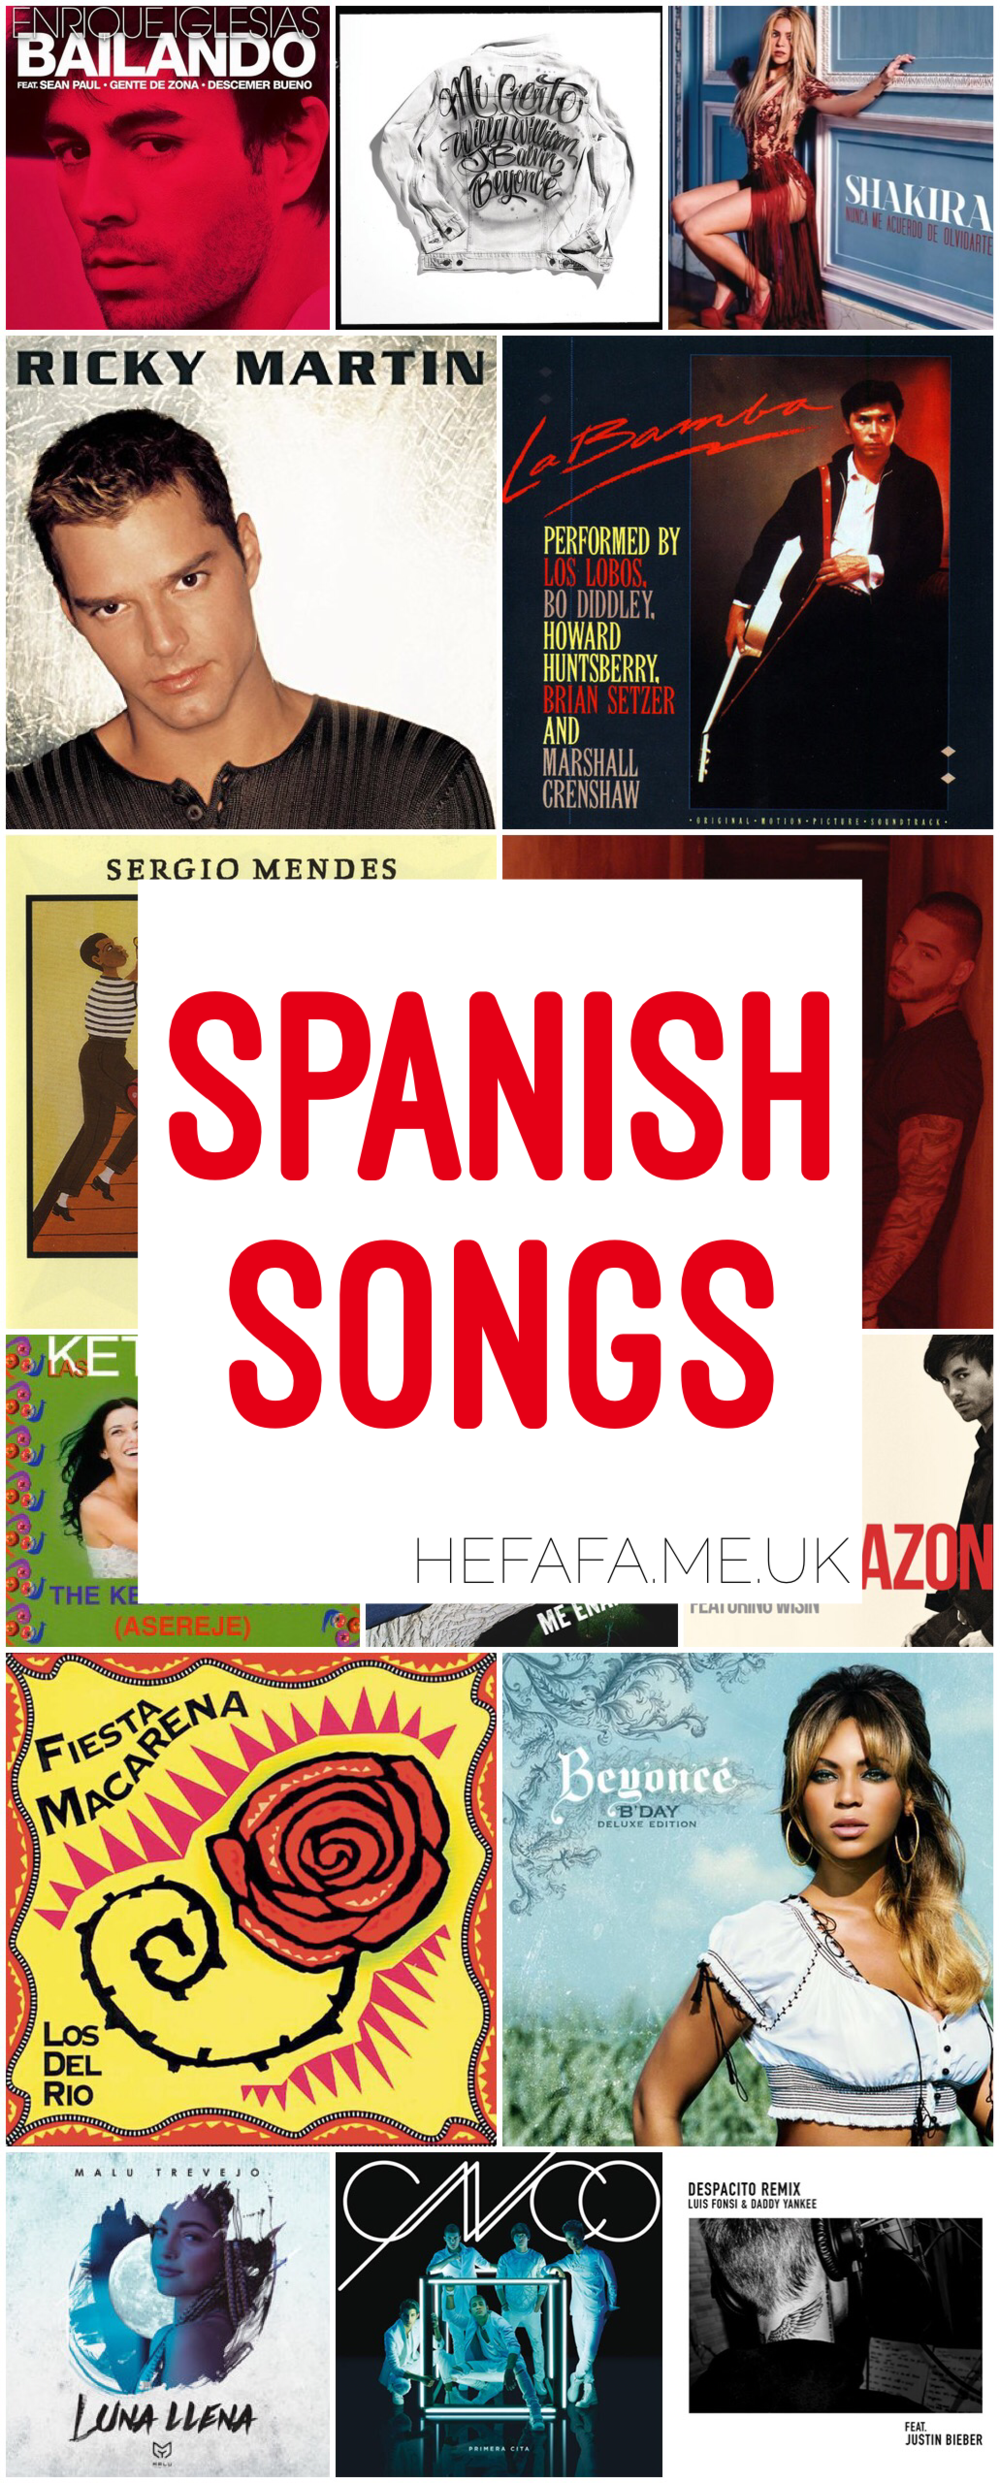 Spanish Songs - Heather Rowland on hefafa.me.uk // Published 1st October 2017